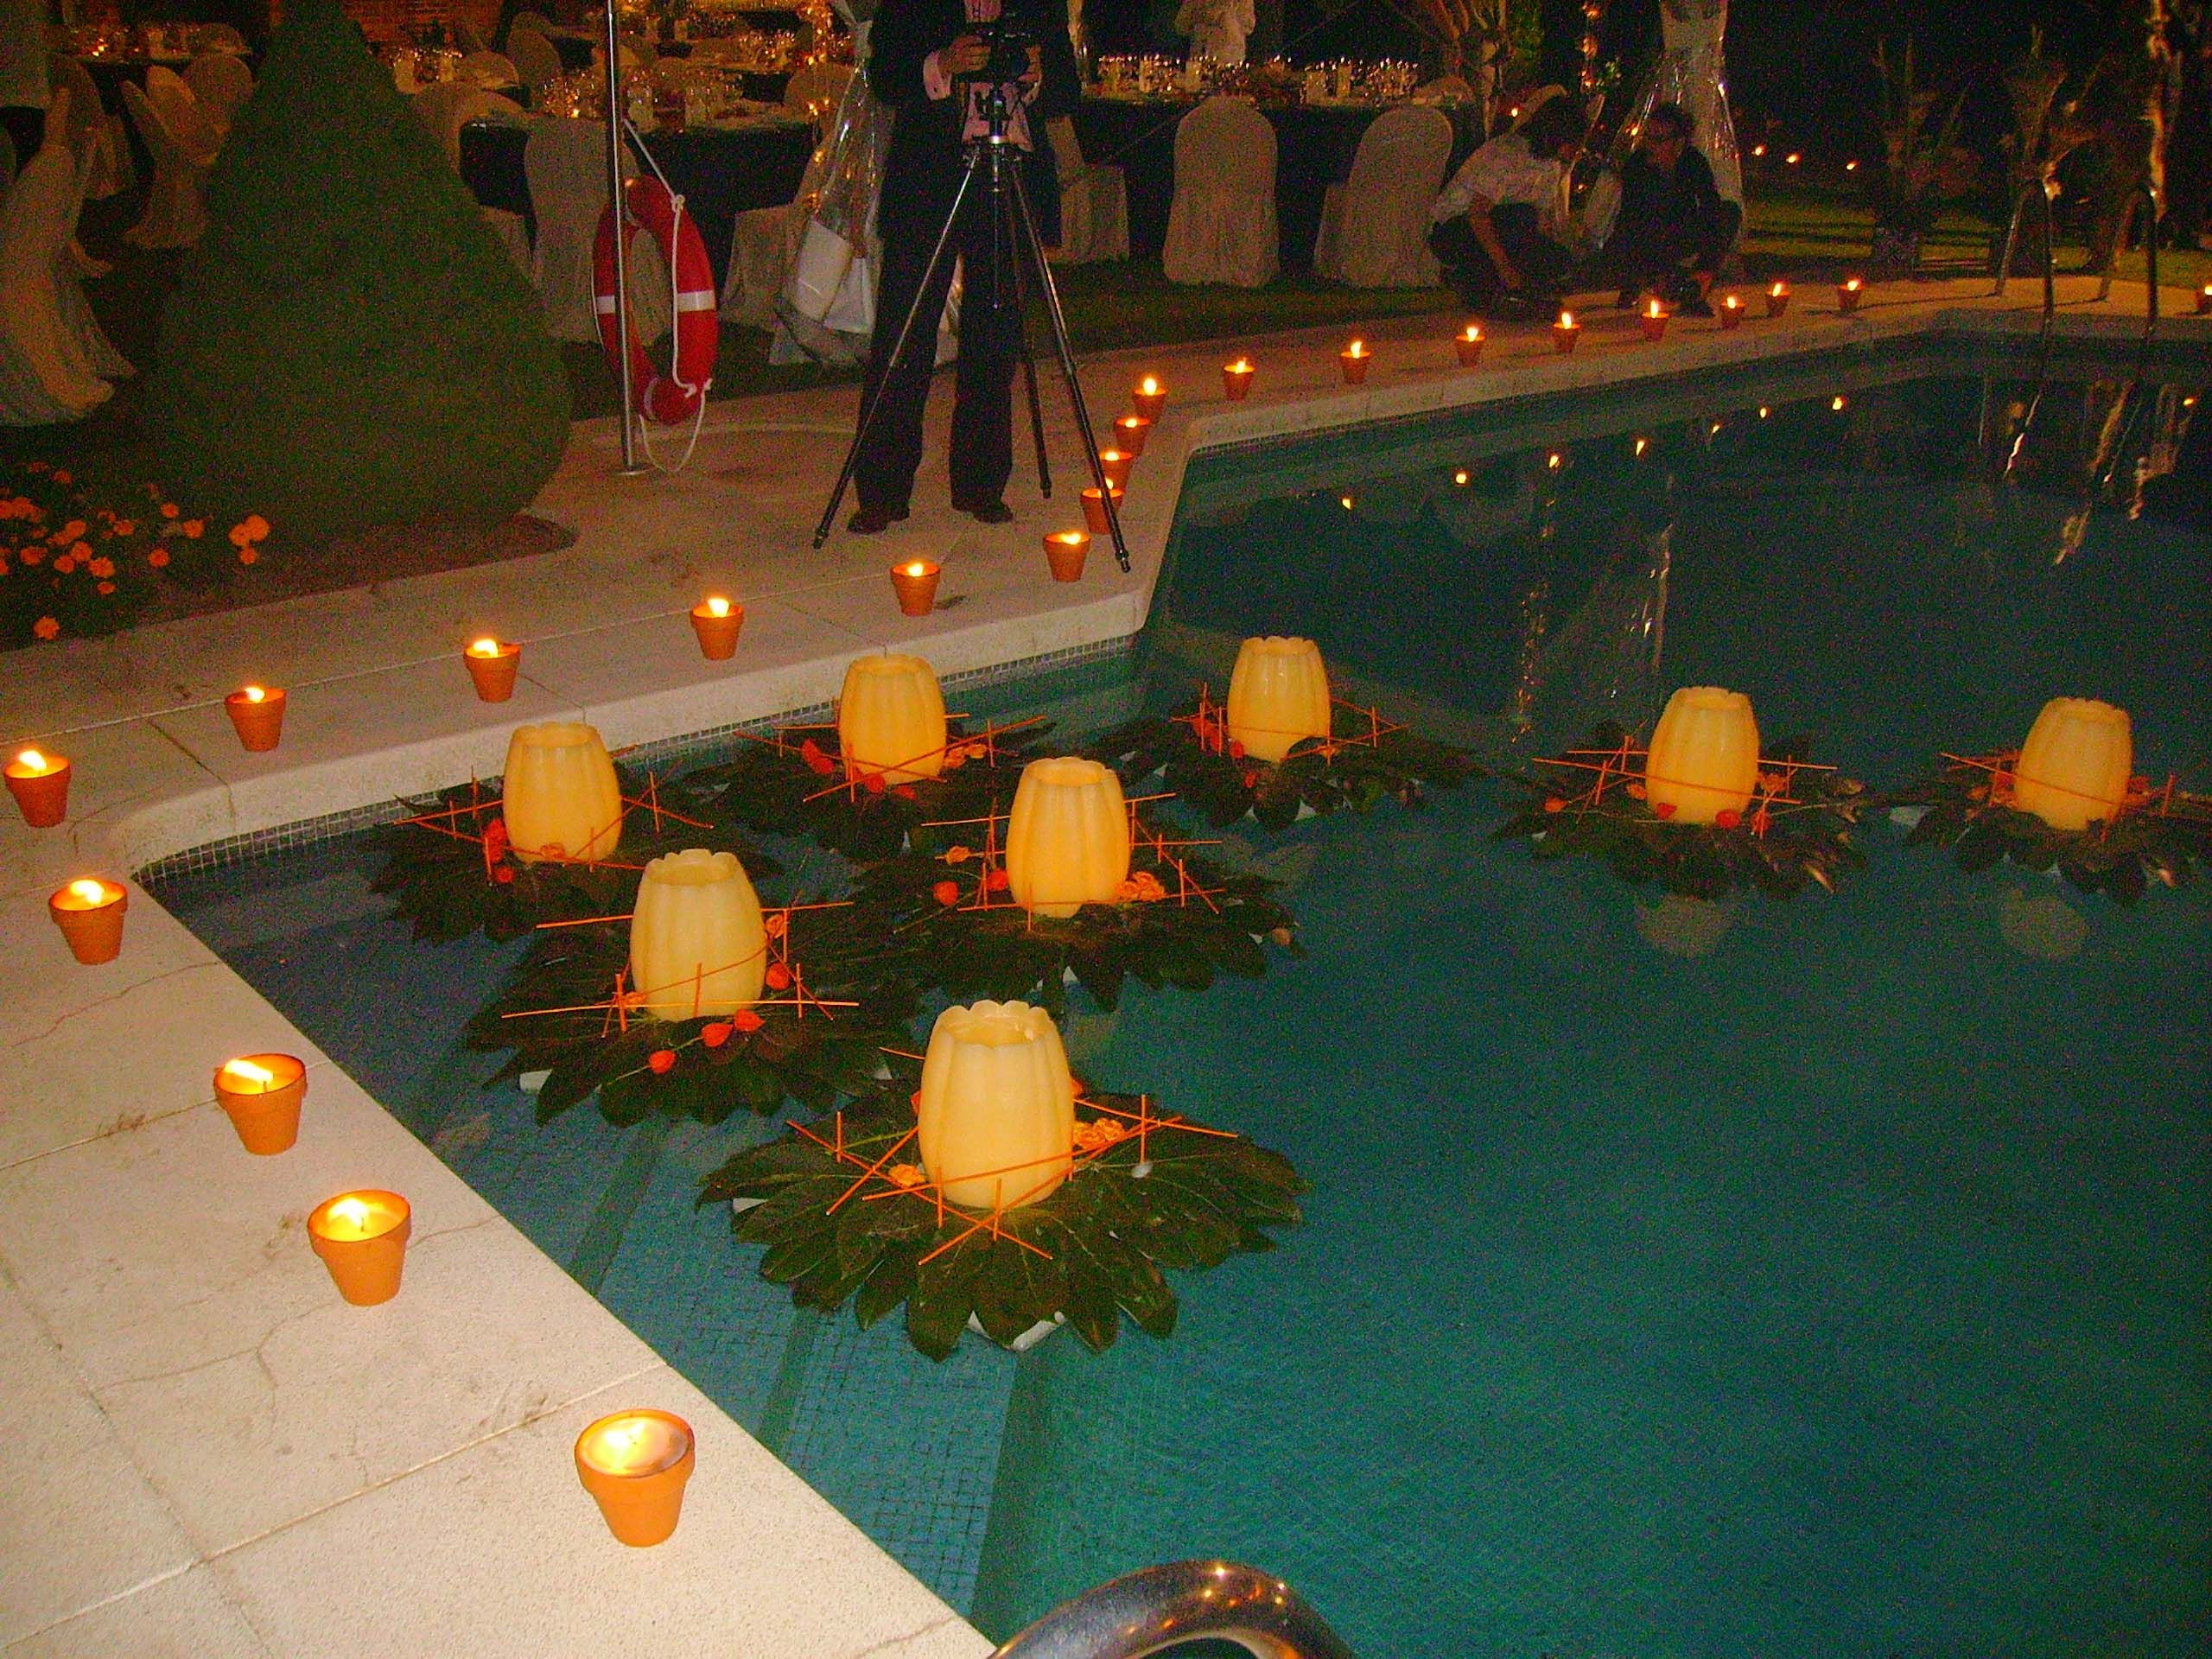 Party Piscina Decoracion Con Velas Para La Piscina Decoracion Velas